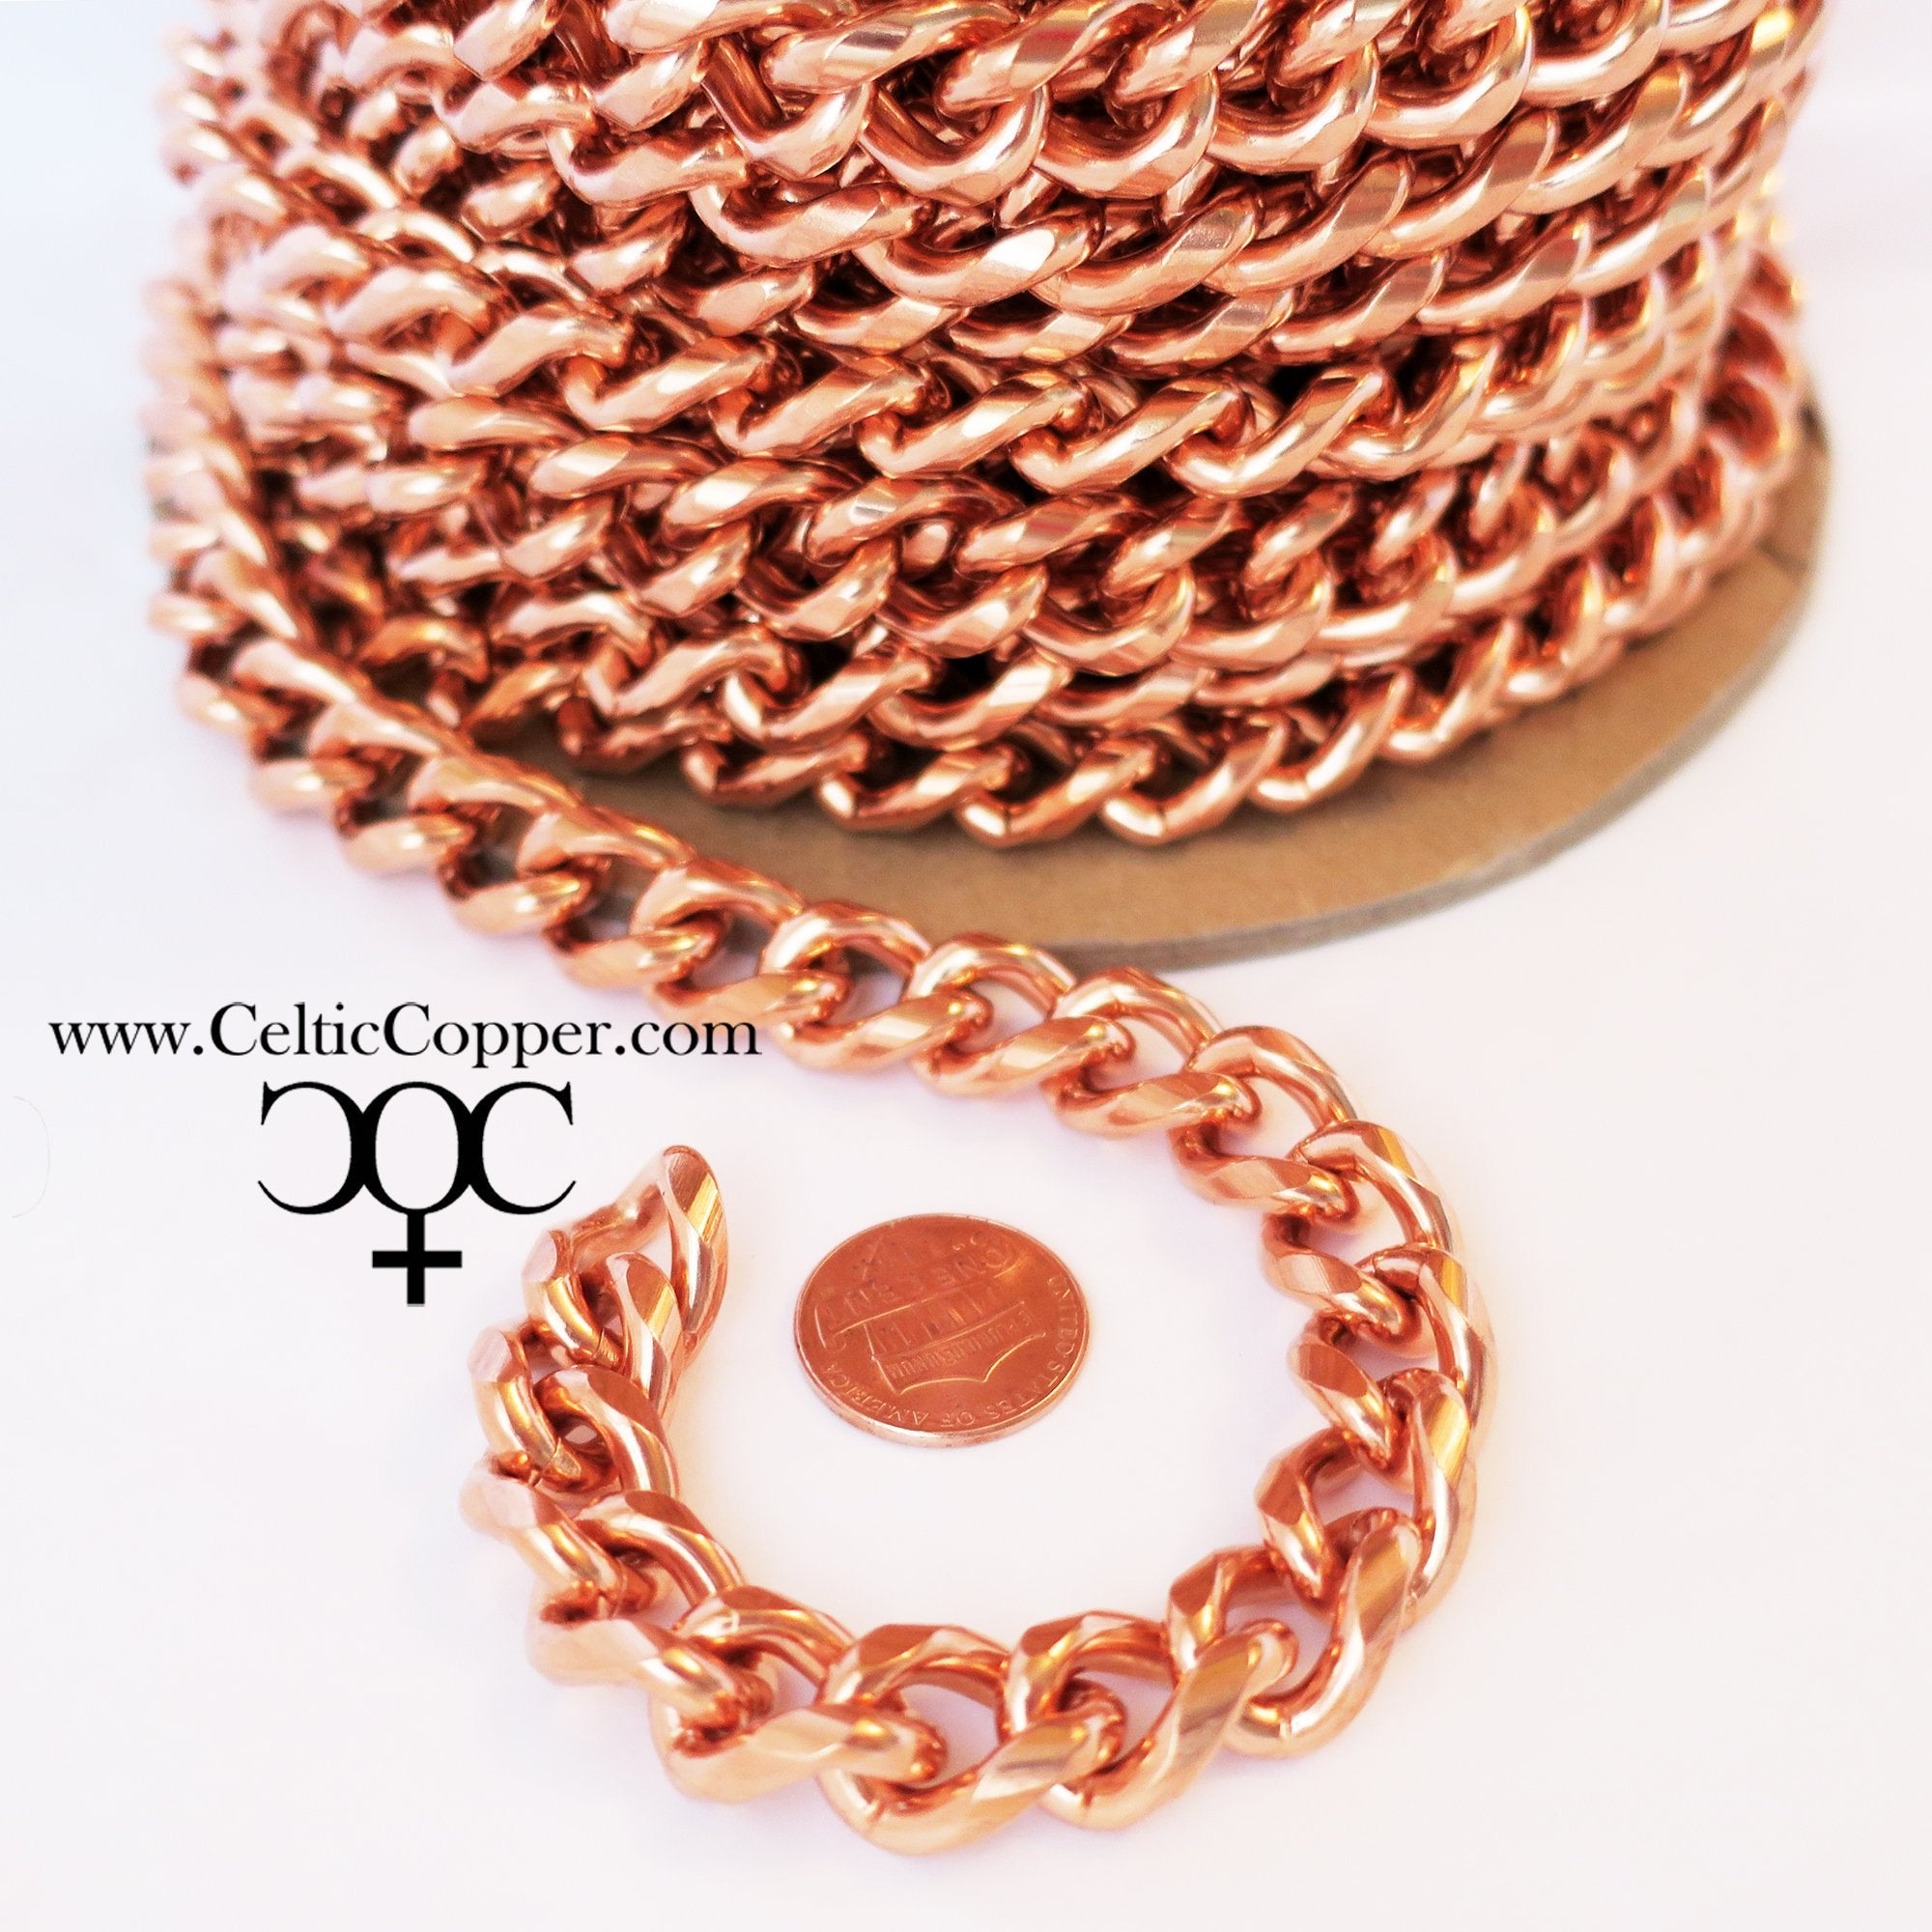 Heavy-Duty Curb Chain by the Foot, Bulk Chain, Jewelry Supplies and Findings for Men's Jewelry, Bracelets & Necklaces F79 celtic-copper-jewelry.myshopify.com